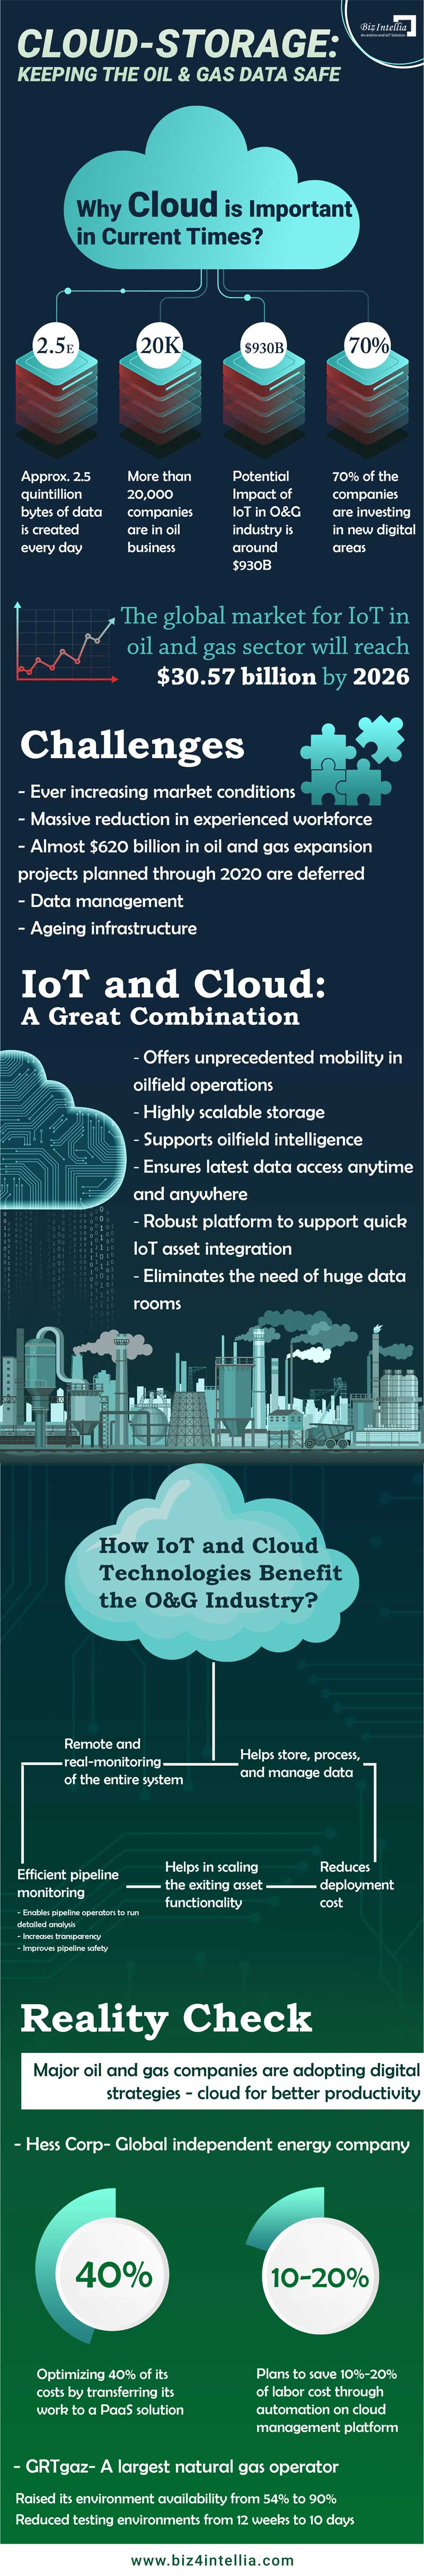 cloud-storage-keeping-safe-the-oil-and-gas-data